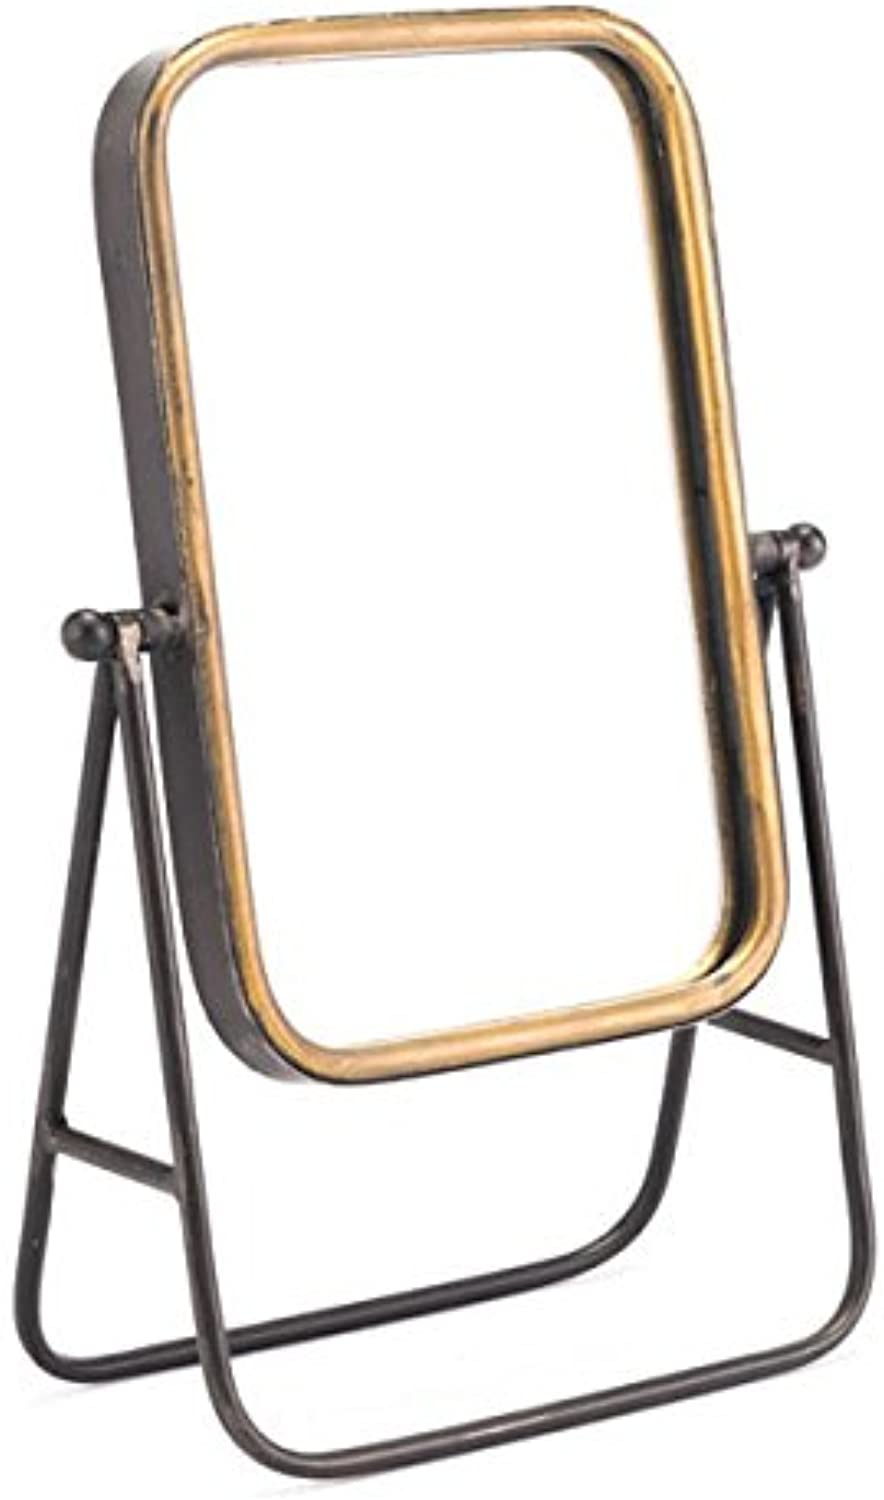 Zuo A10548 Mirror Stand Antique gold